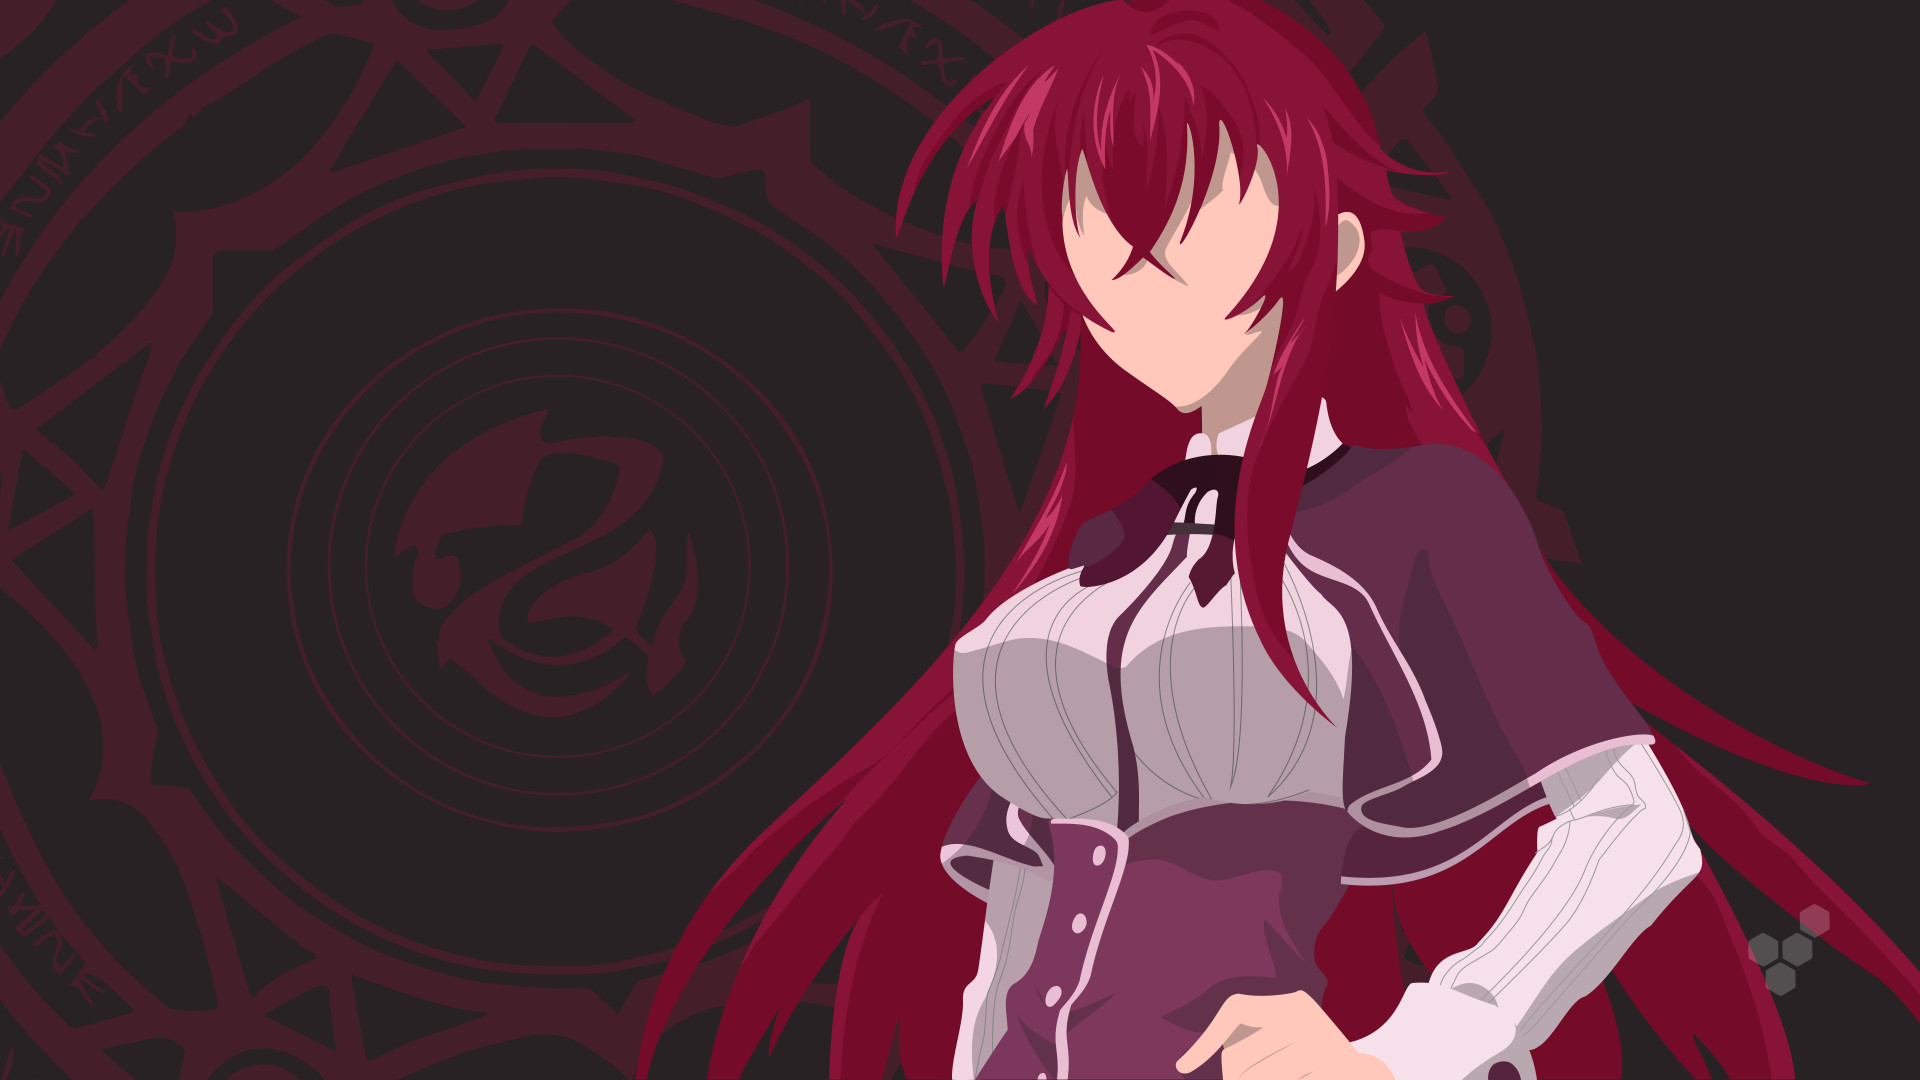 Rias Gremory Wallpapers (73+ images)